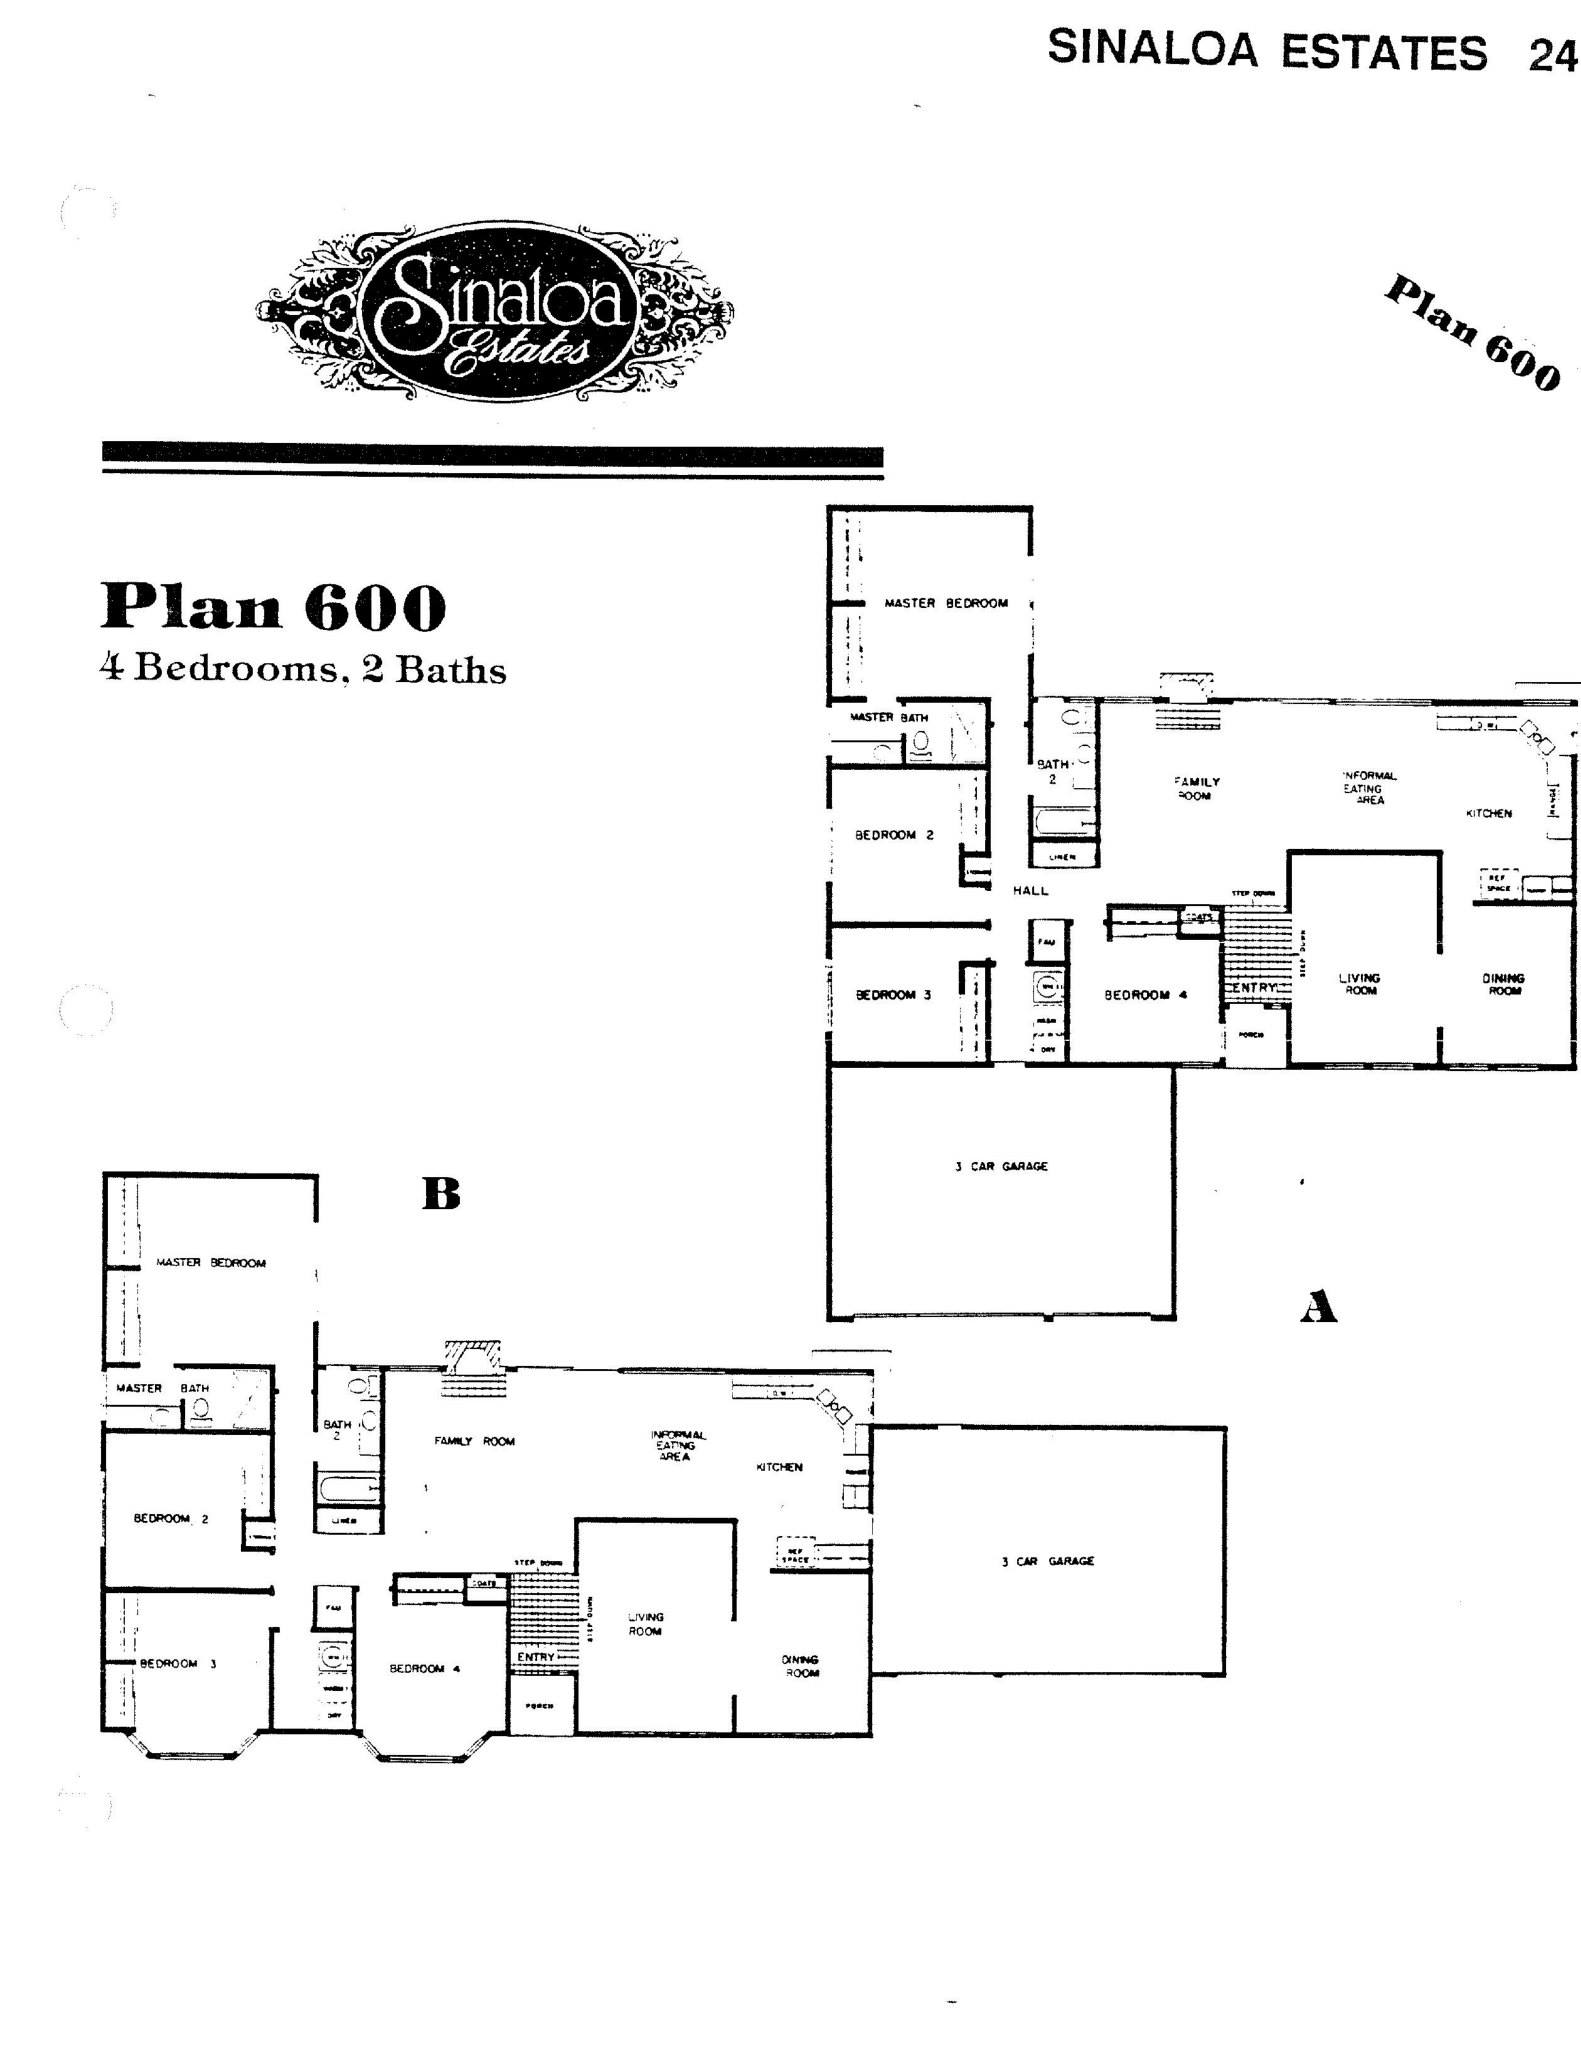 Sinaloa Estates - Plan 600